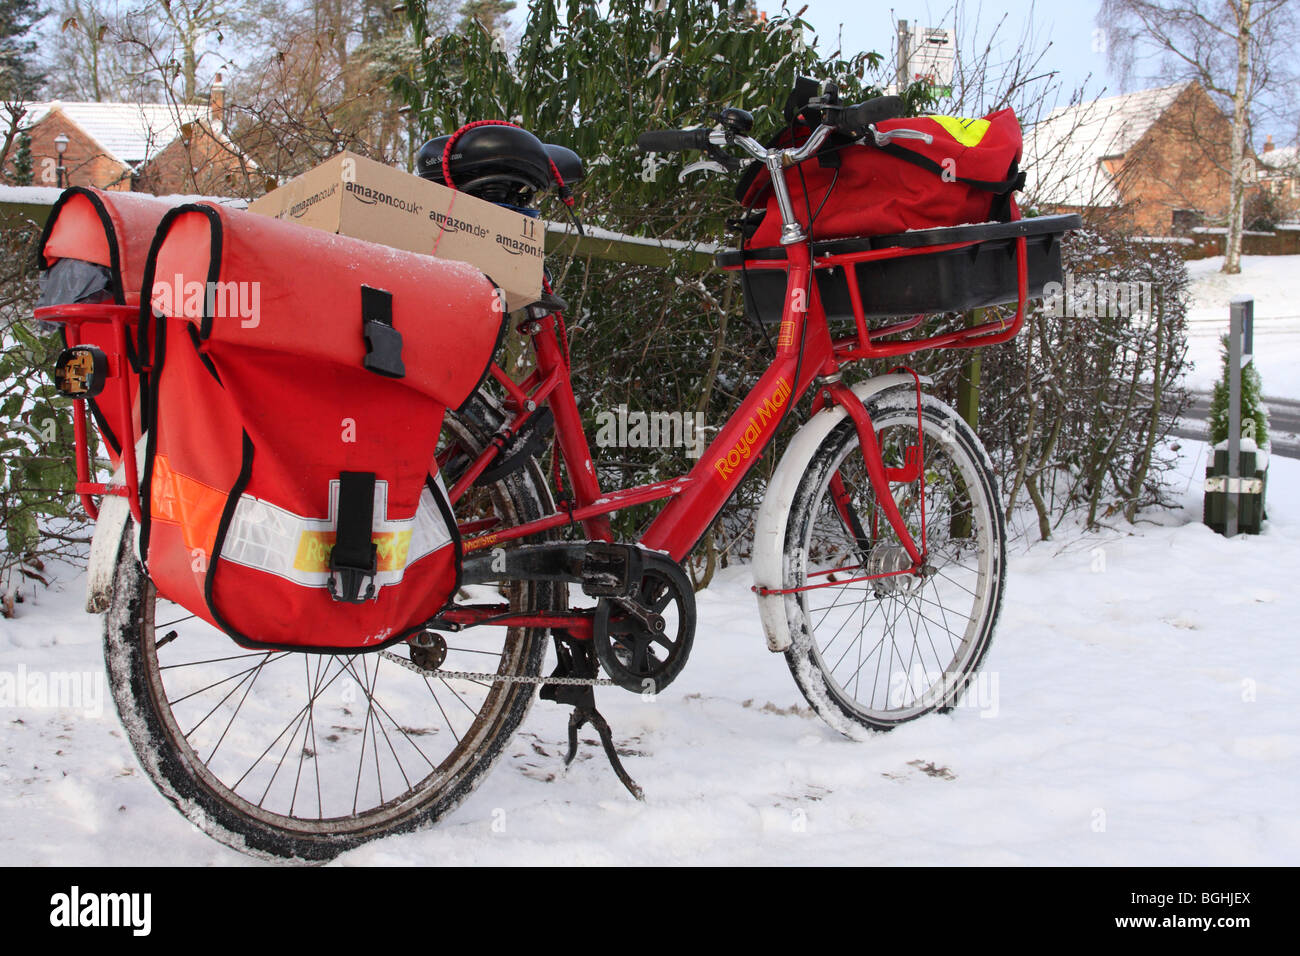 A Royal Mail bicycle in an English village in winter. - Stock Image